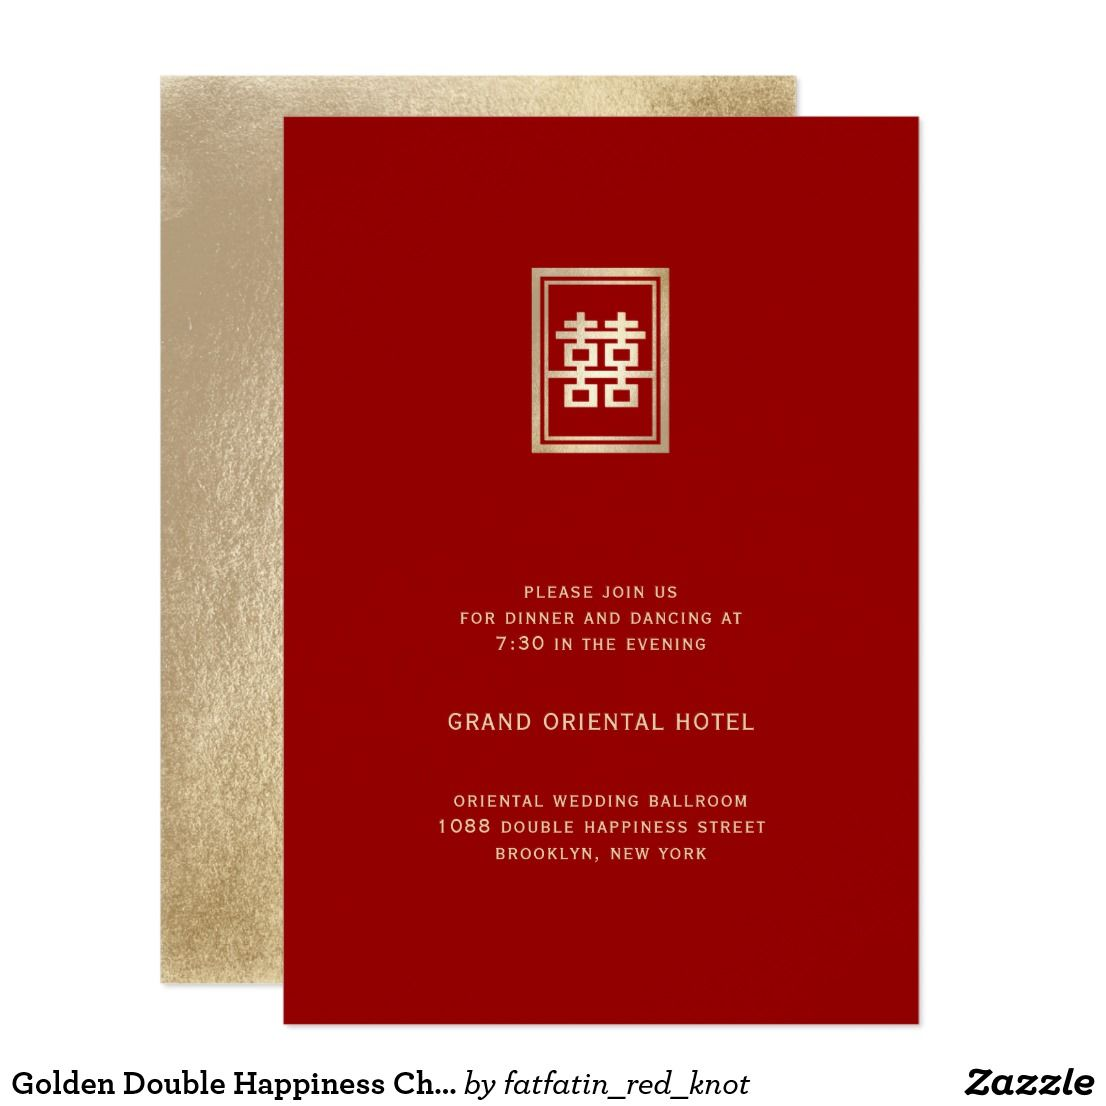 Golden Double Happiness Chinese Wedding Reception Invitation ...